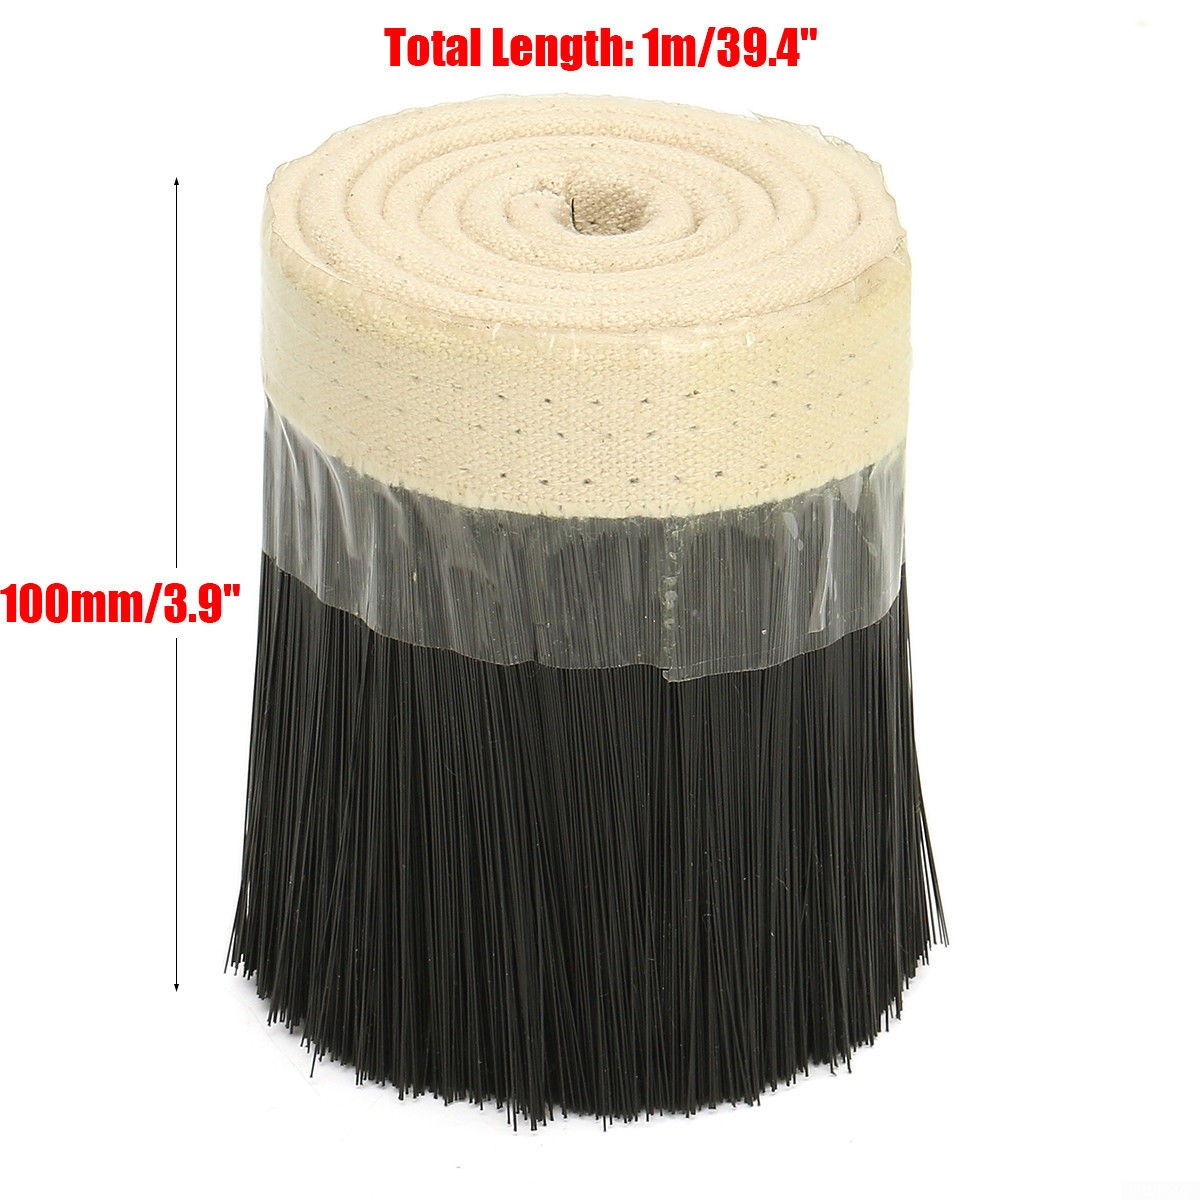 Details about  /70//100mm 1m Nylon Brush Vacuum Cleaner Engraving Machine Dust Cover CNC Router